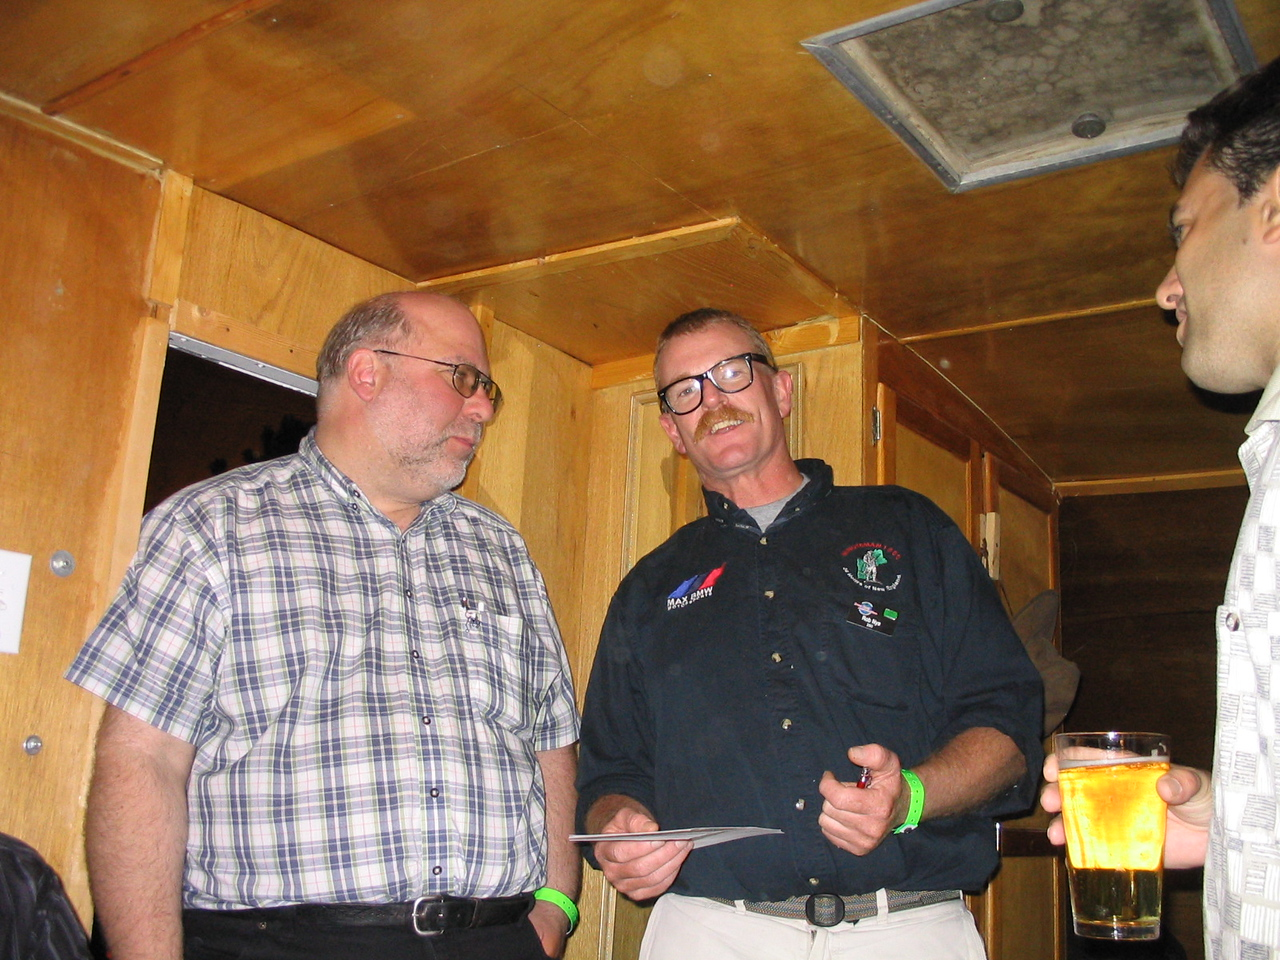 Mike Kneebone and Rob Nye at the Twisy Sisters compound.